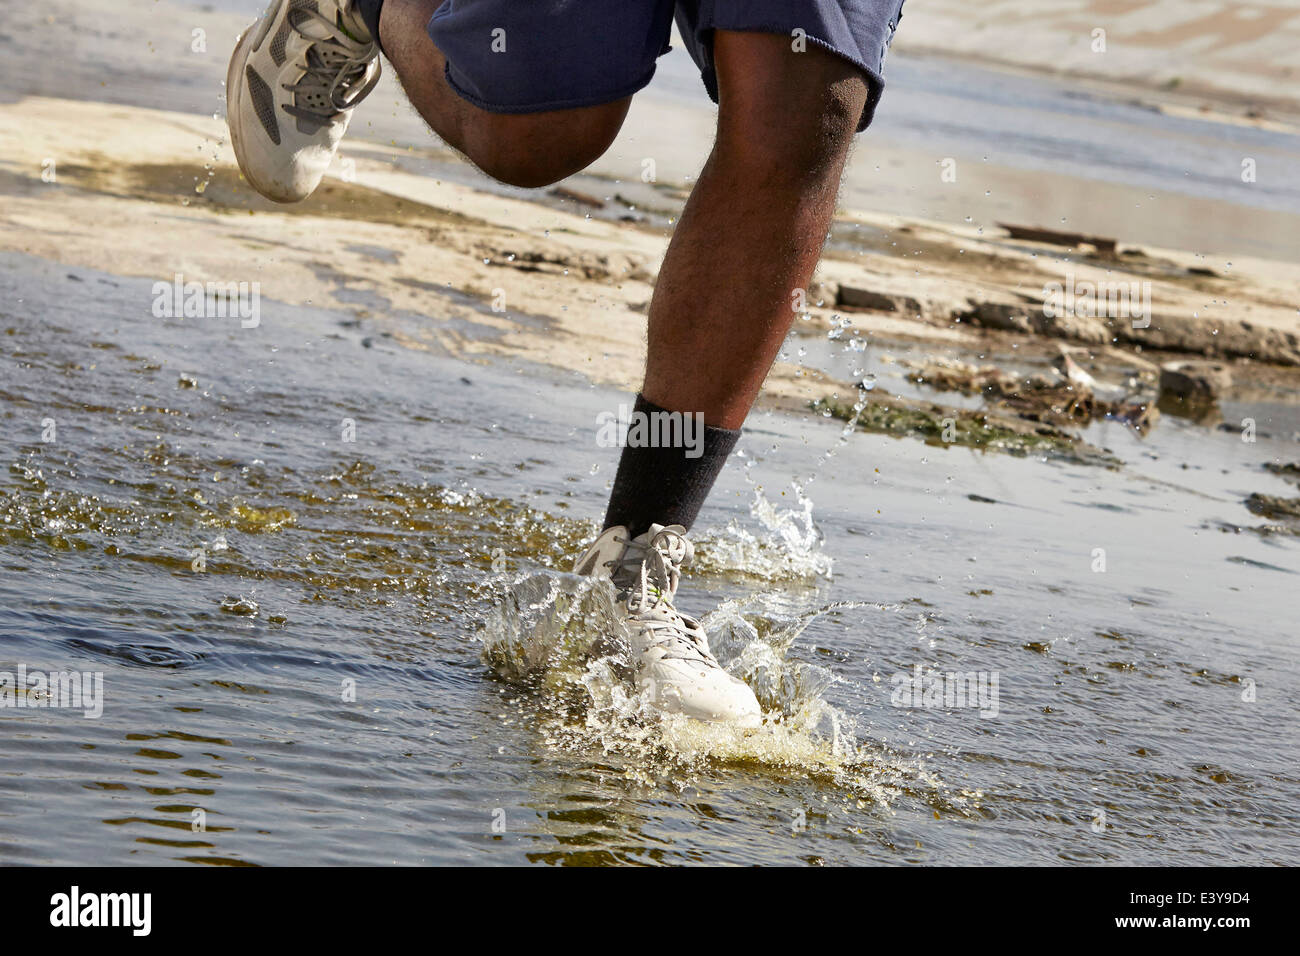 Cropped view of young man running through river - Stock Image